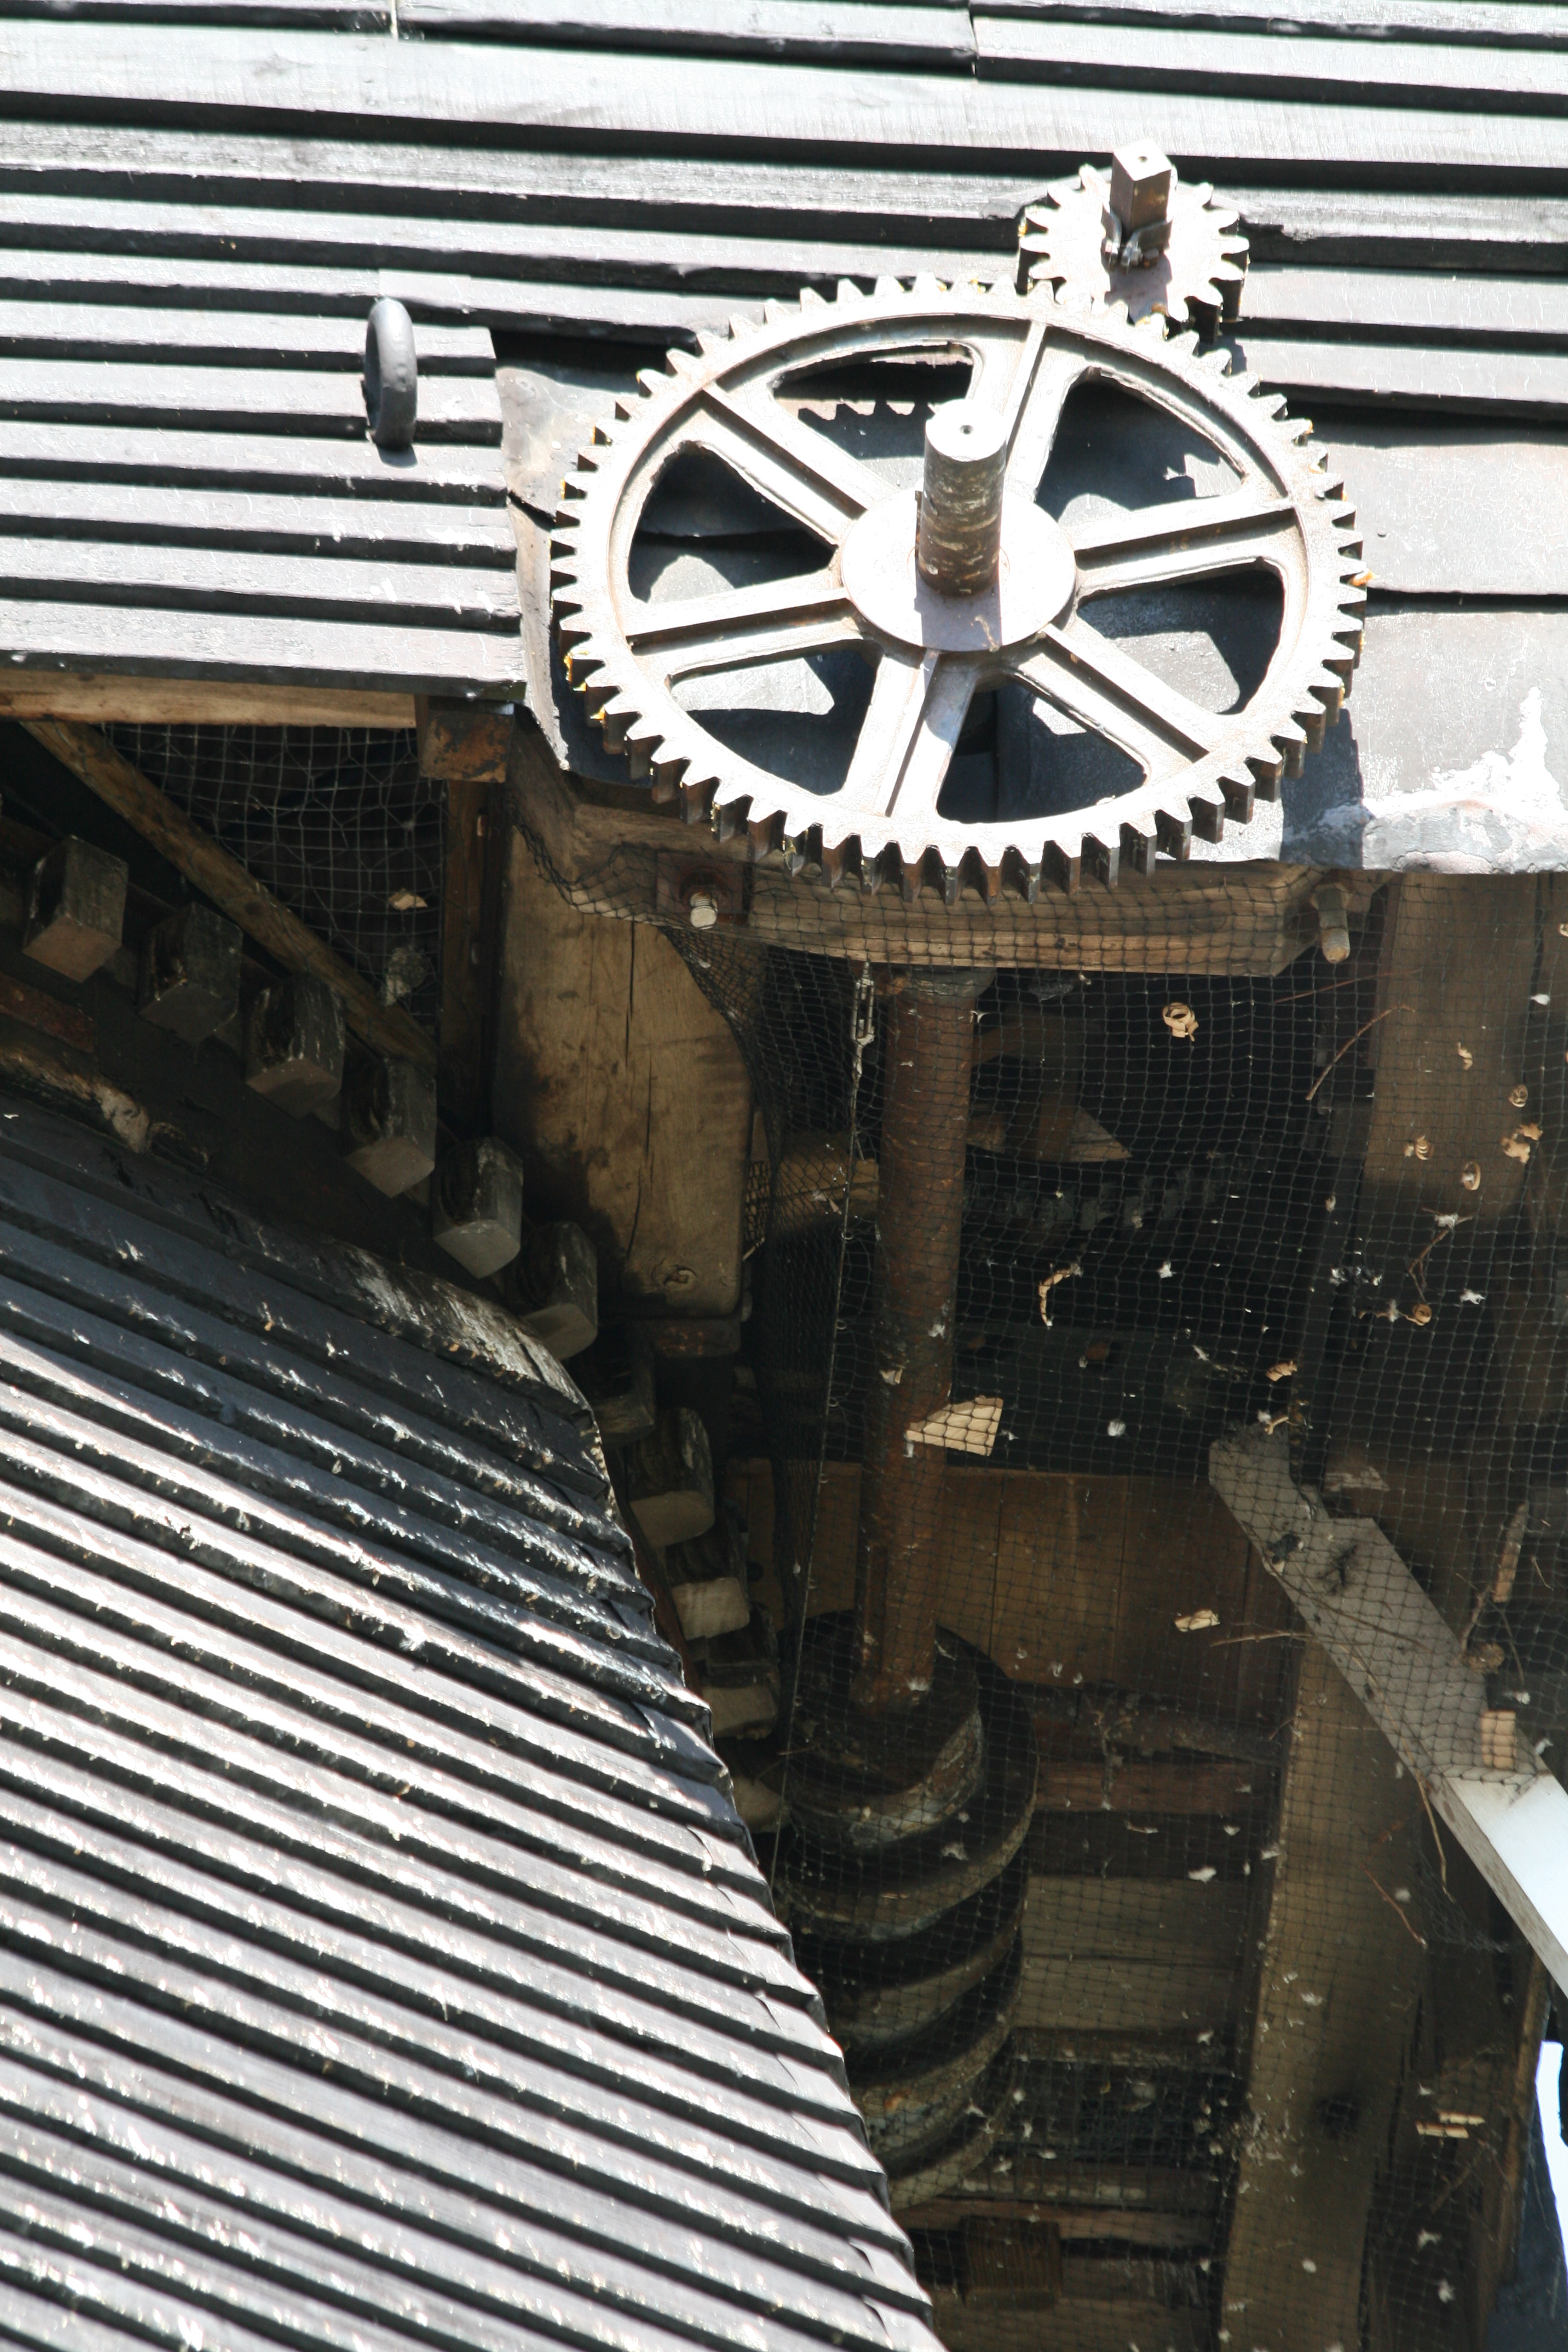 Gear train to worm drive